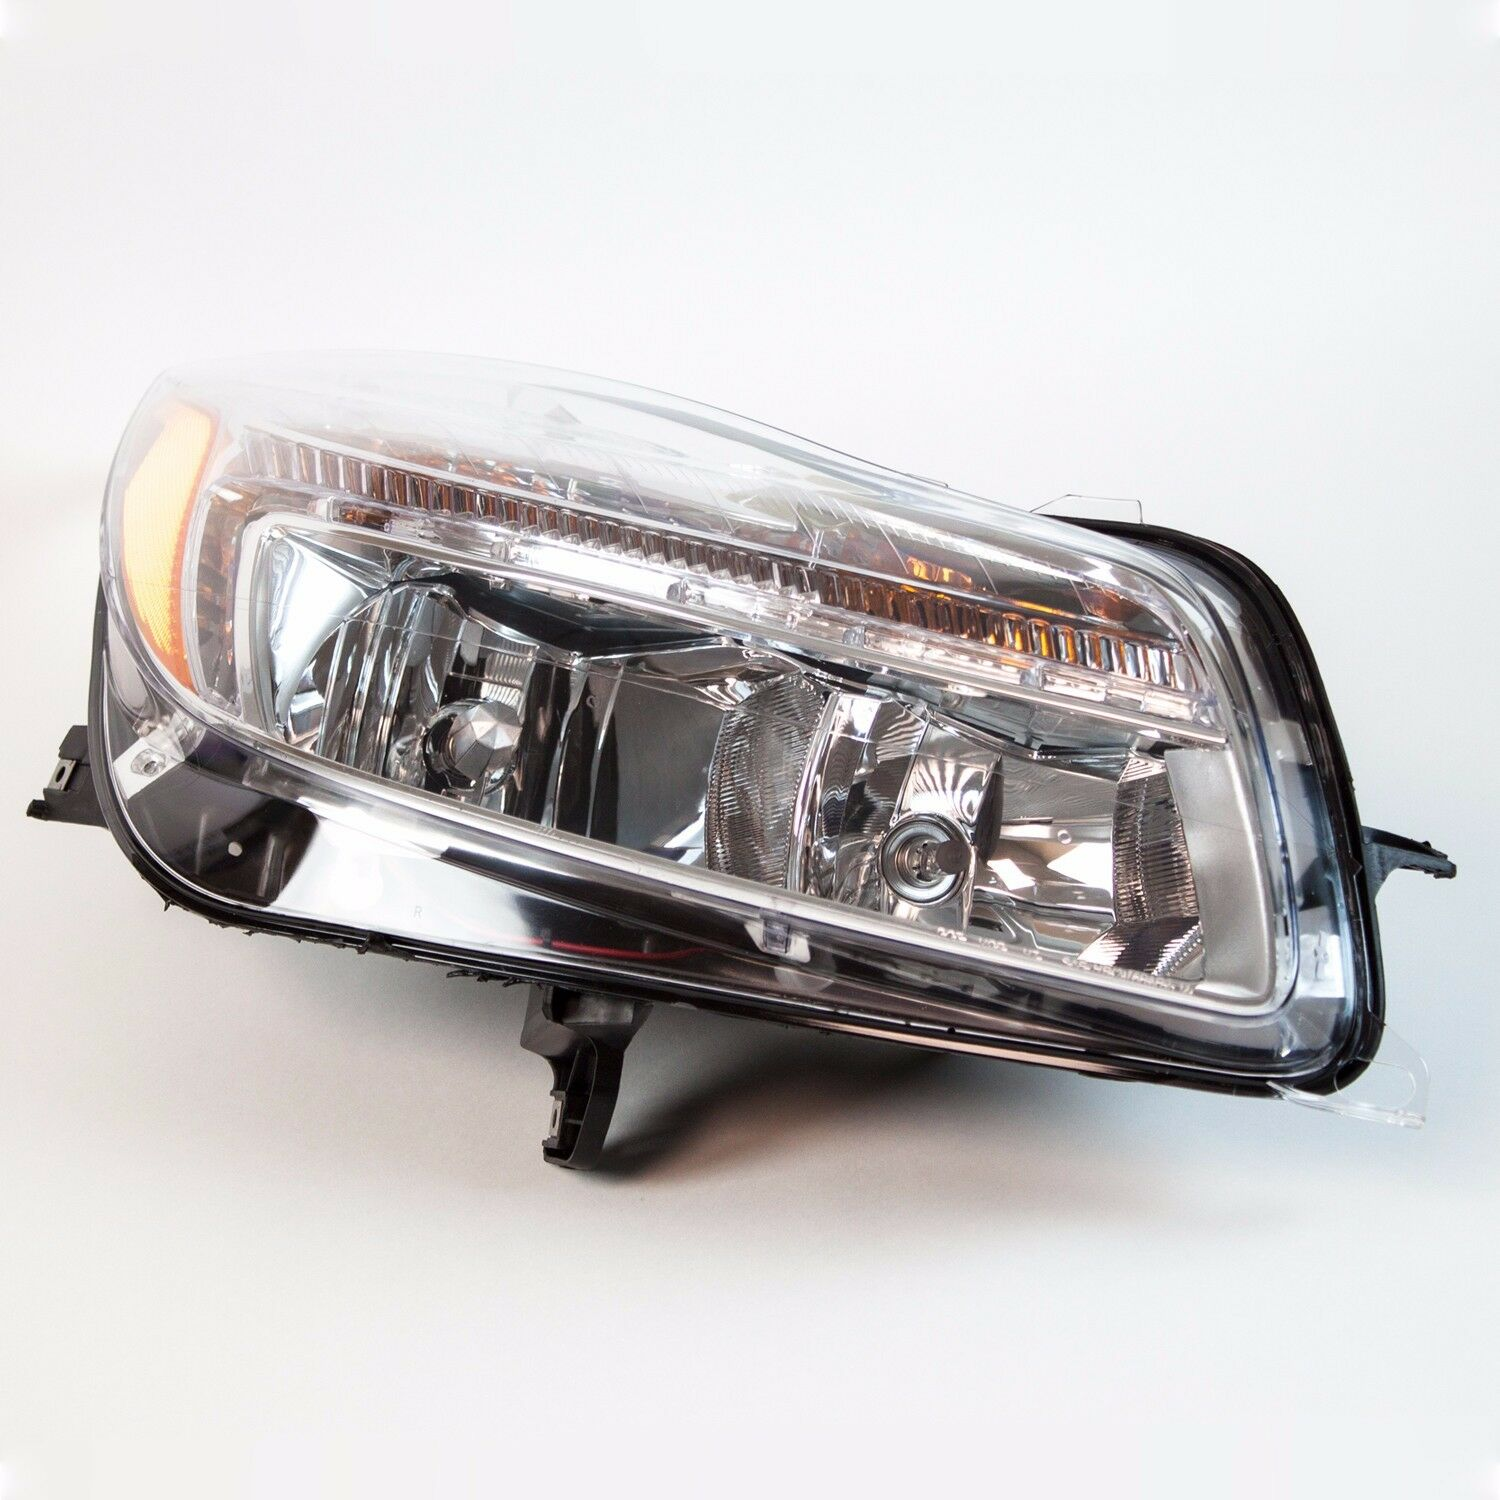 Regal Led Headlamp Nsf Certified Headlight Assembly Fits 2011 2014 Buick Regal Tyc